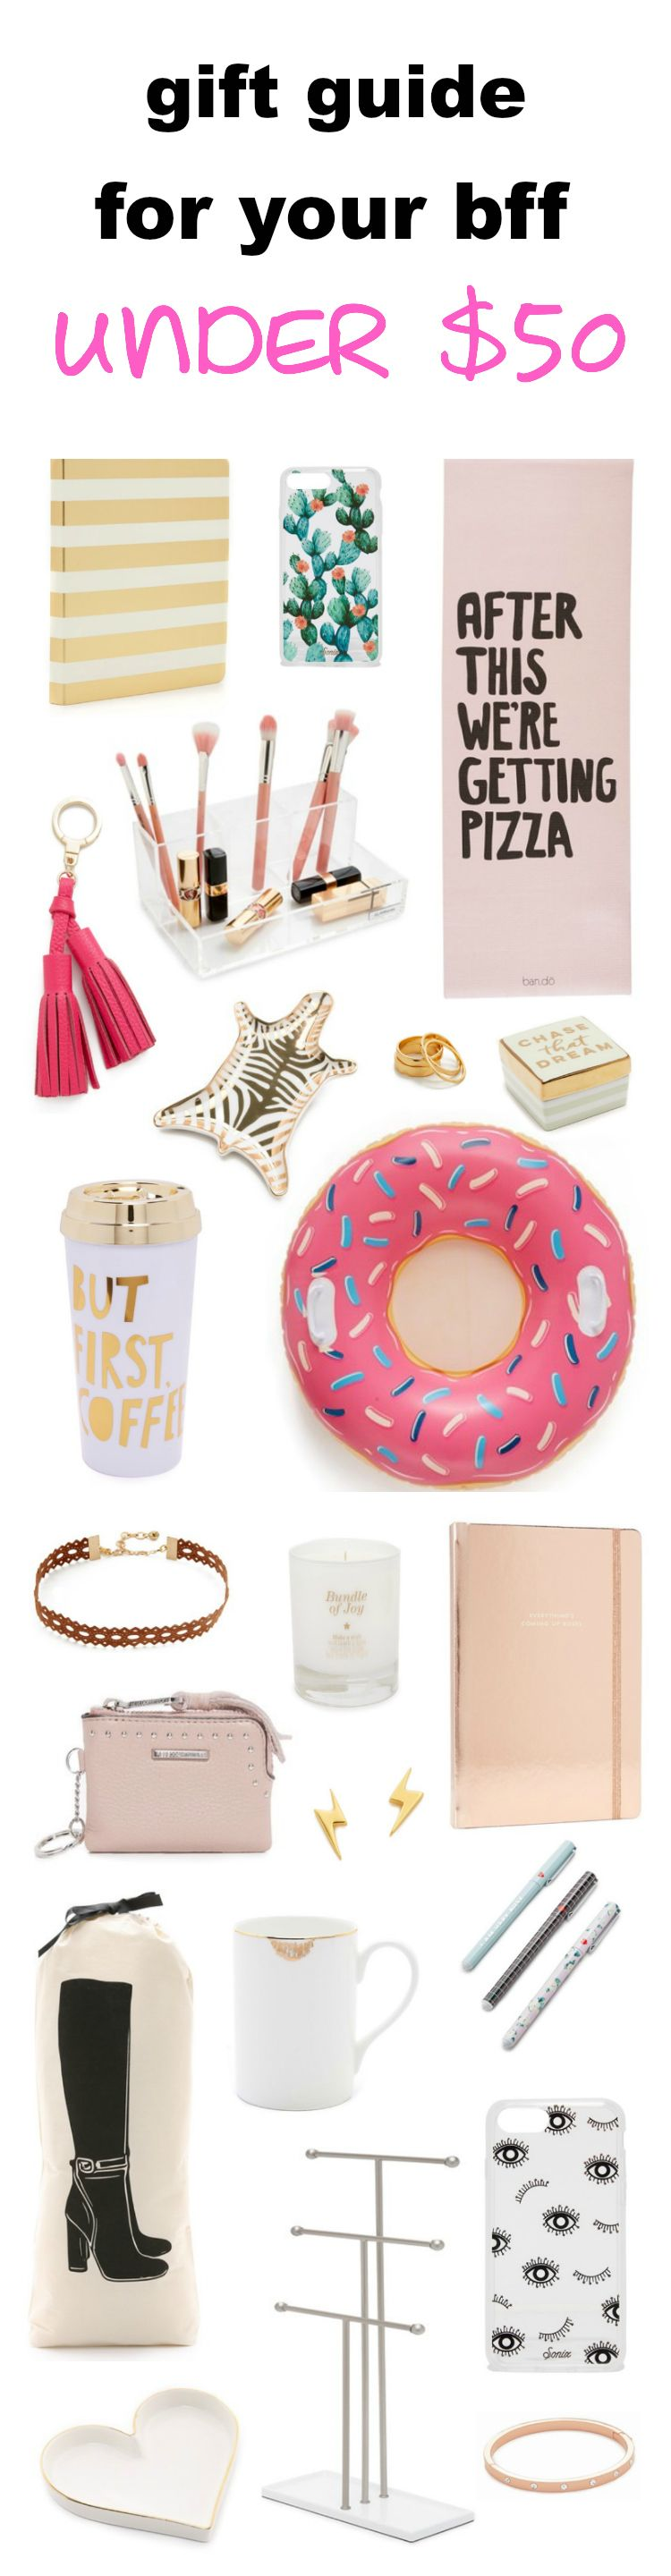 Best Friend Gift Ideas For Christmas Part - 34: Gift Guide For Your BFF (Under $50)